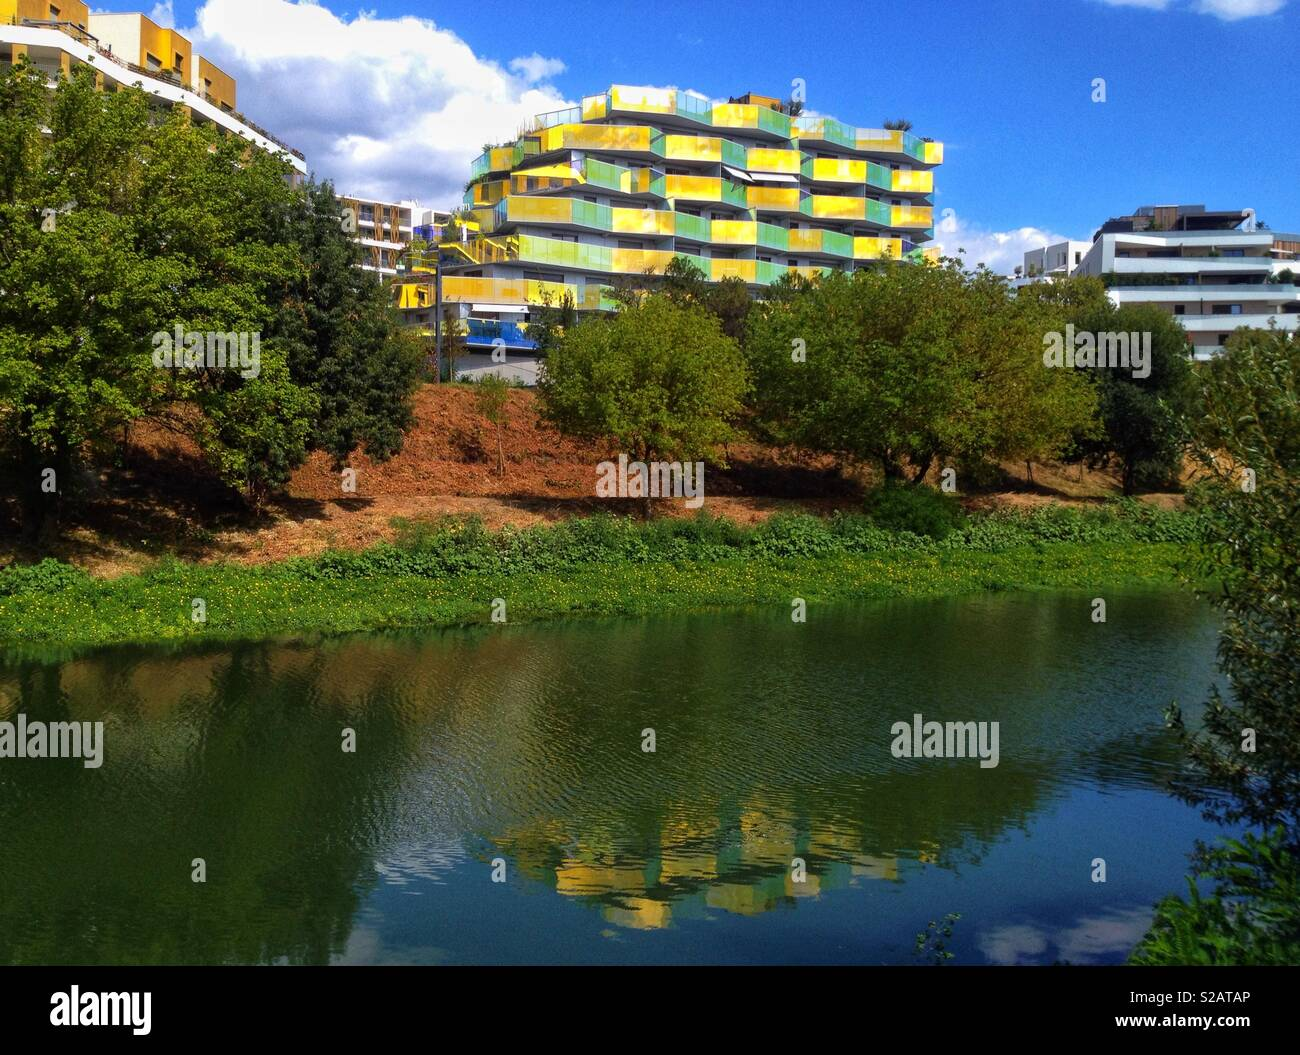 Reflection of the new modern building Koh-I-Noor in the river Lez, Montpellier France - Stock Image